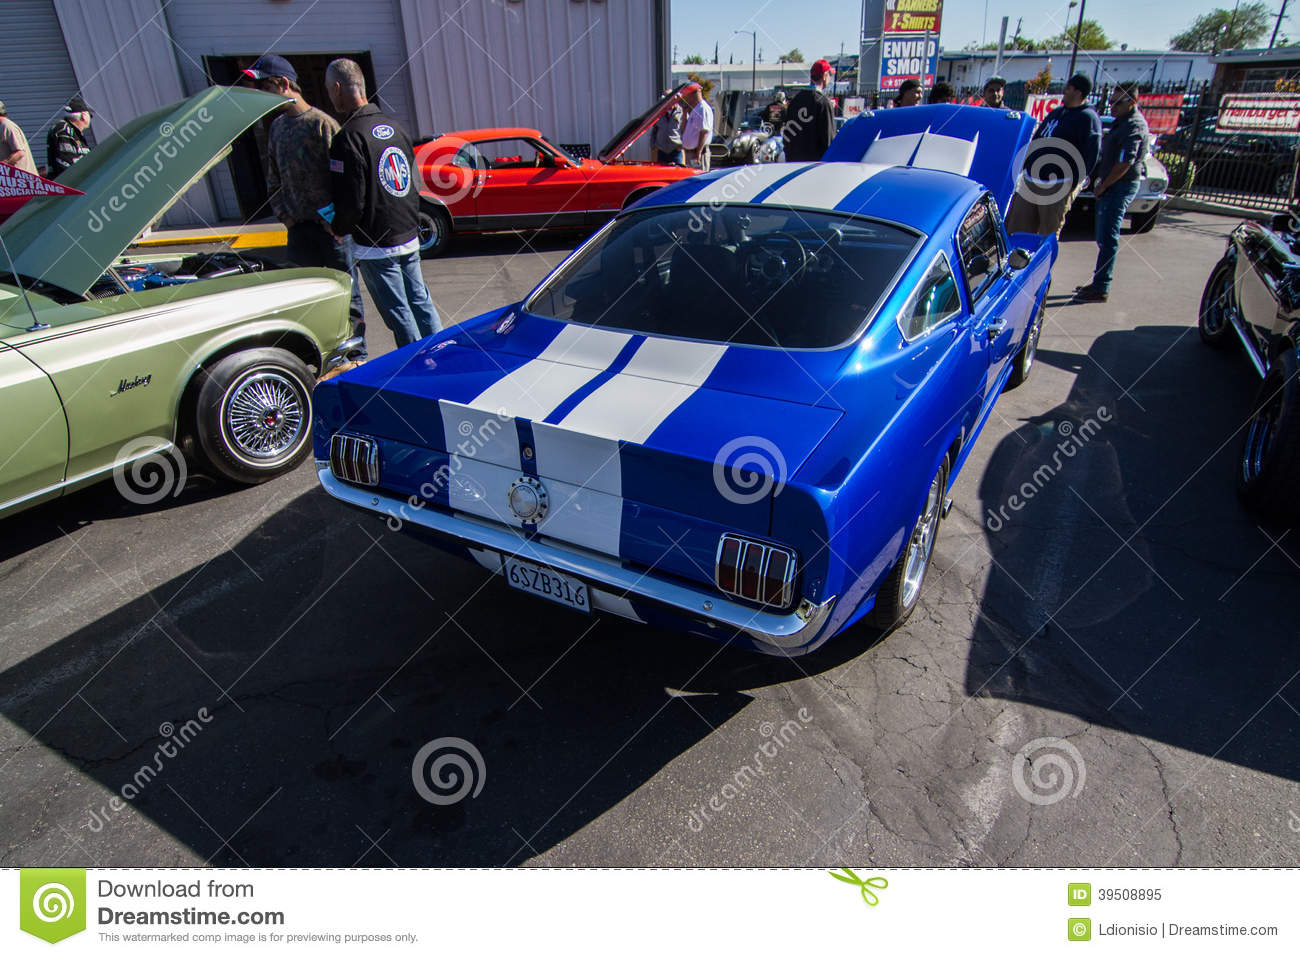 Mustangs plus stockton ca car show 2014